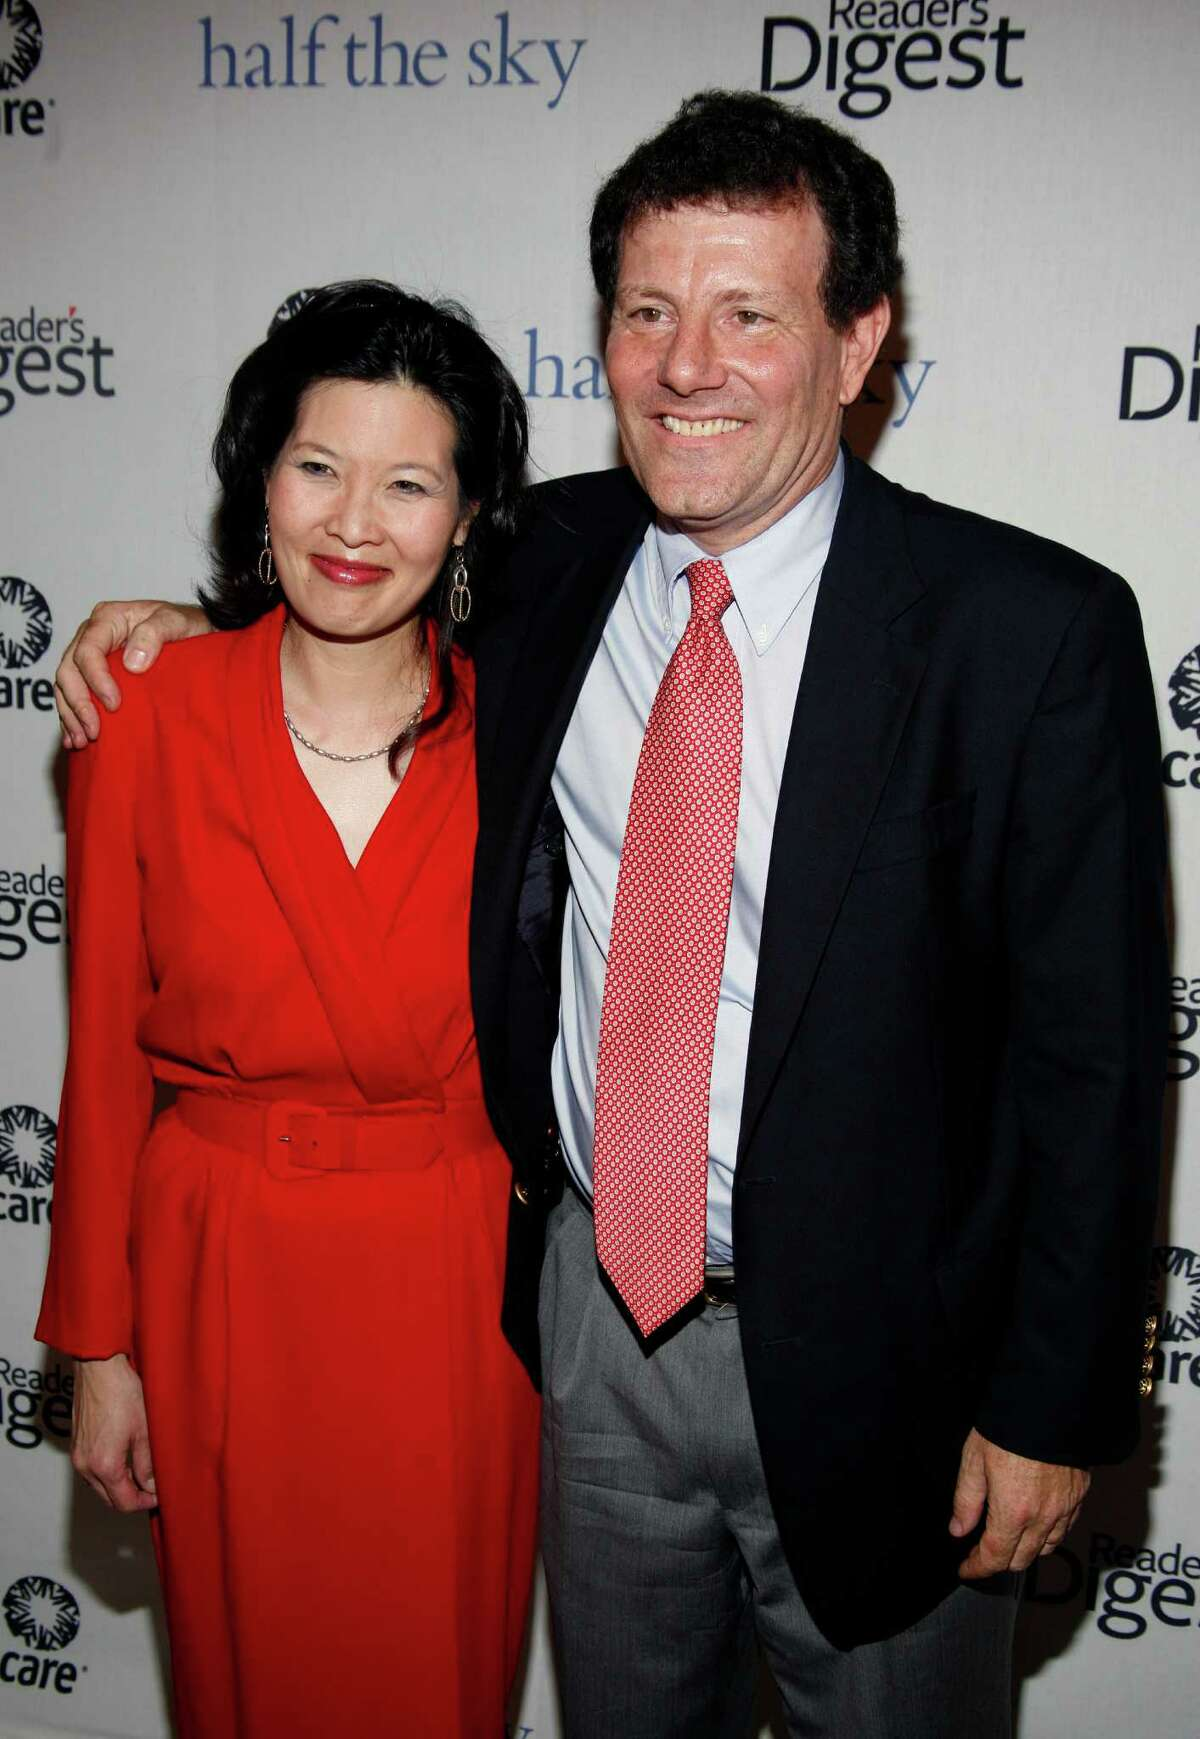 Sheryl WuDunn and Nicholas Kristof arrive at a party for the book they co-authored 'Half the Sky: Turning Oppression into Opportunity for Women Worldwide' in New York, Wednesday, Sept. 23, 2009. (AP Photo/Andy Kropa)